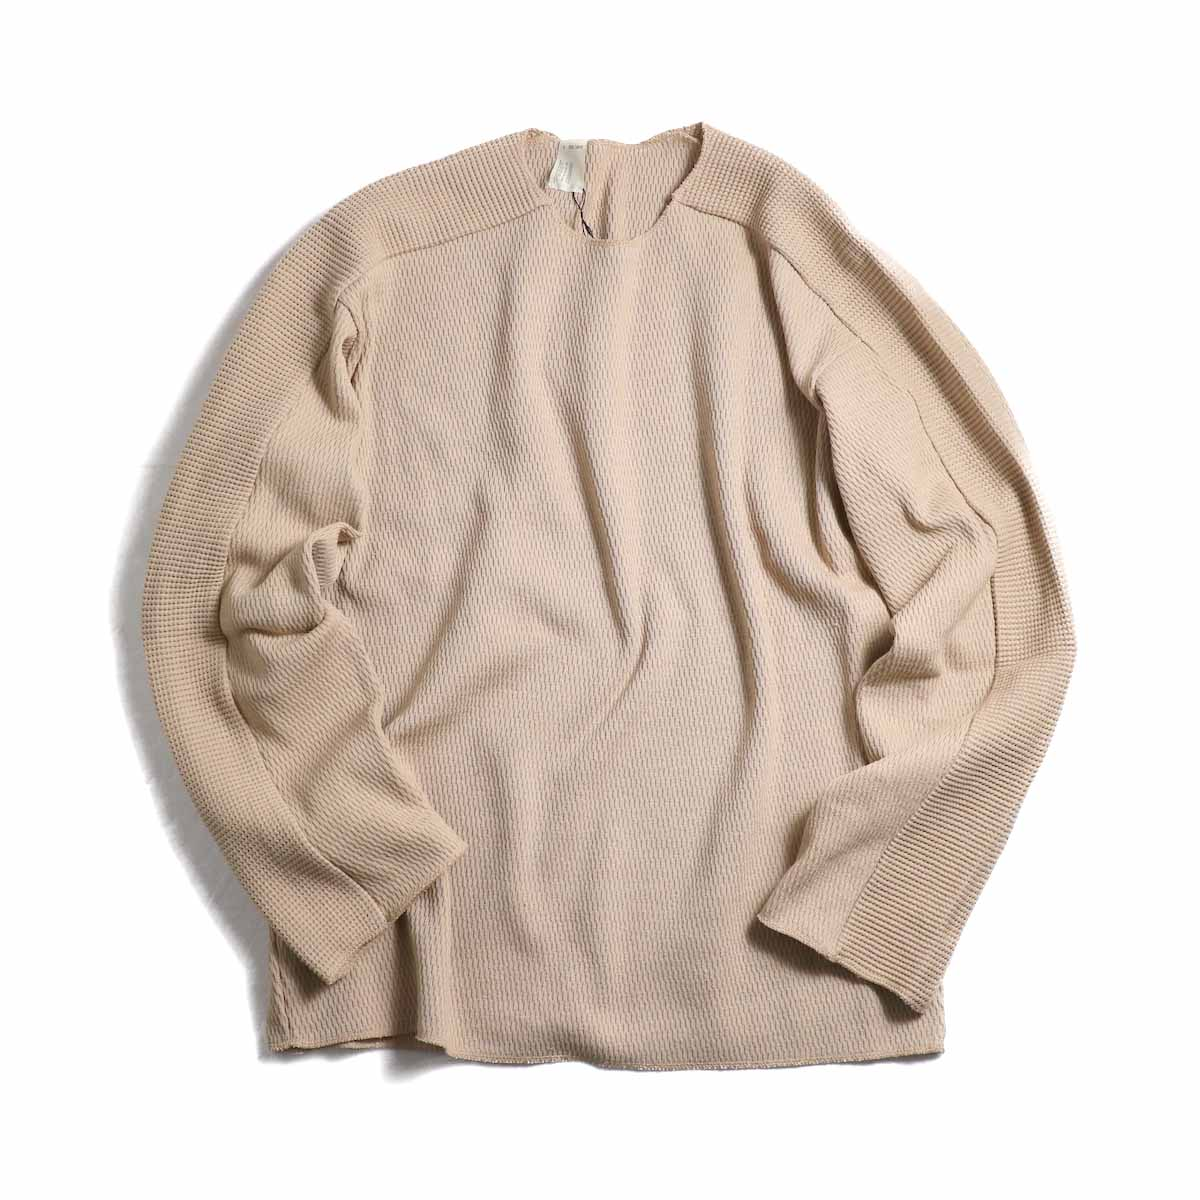 N.HOOLYWOOD / 191-CS18-052 Line Long Sleeve Thermal Tee -Beige